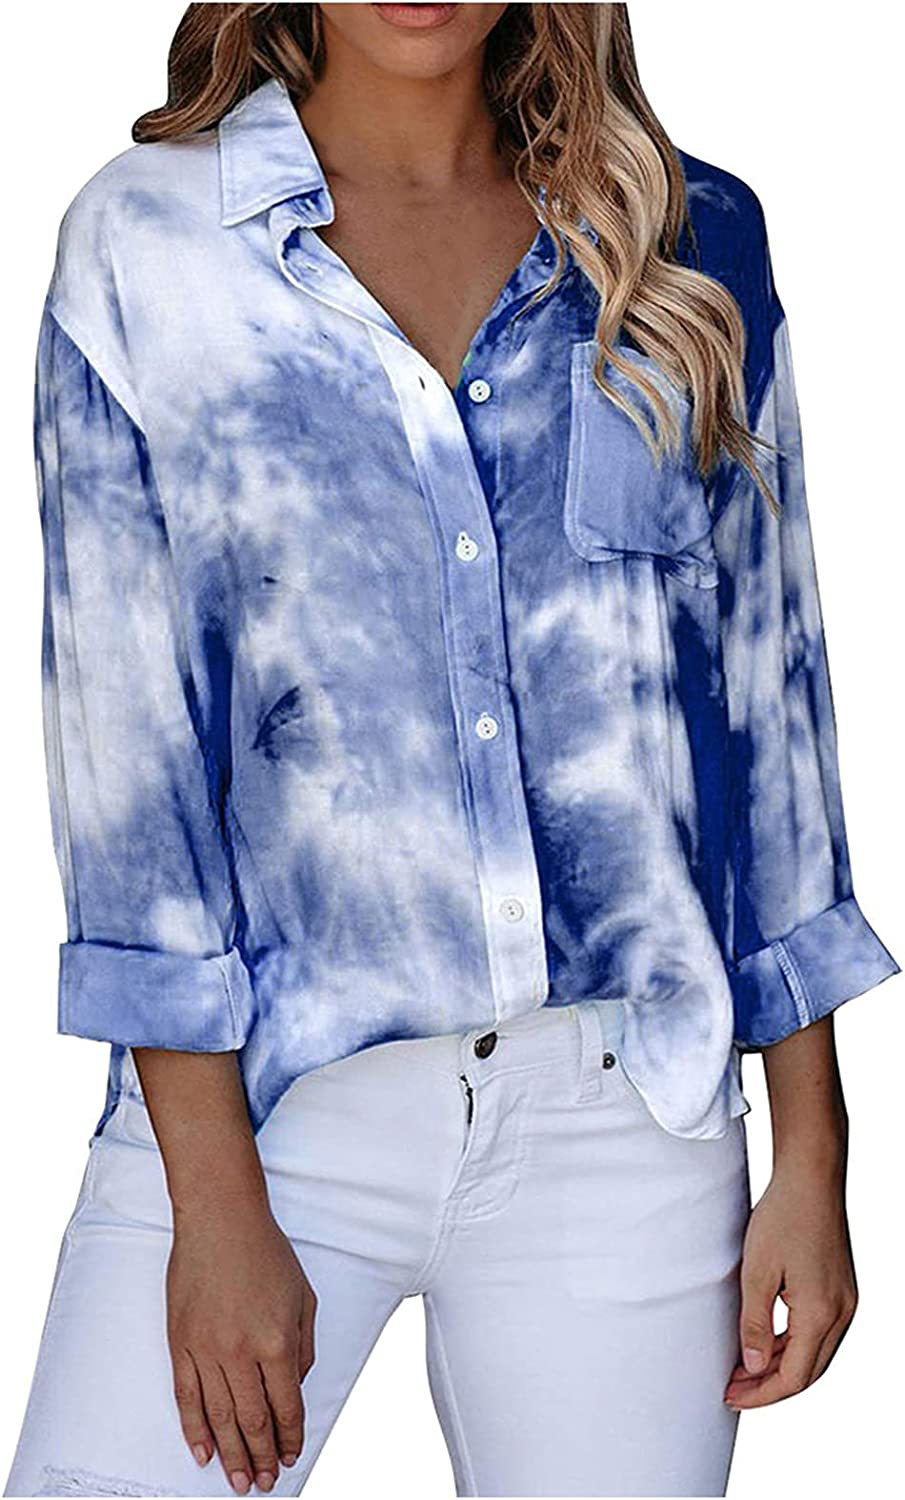 Womens Button Down V Neck Shirts Long Sleeve Blouse Roll Up Cuffed Sleeve Casual Tie Dye Tops with Pockets